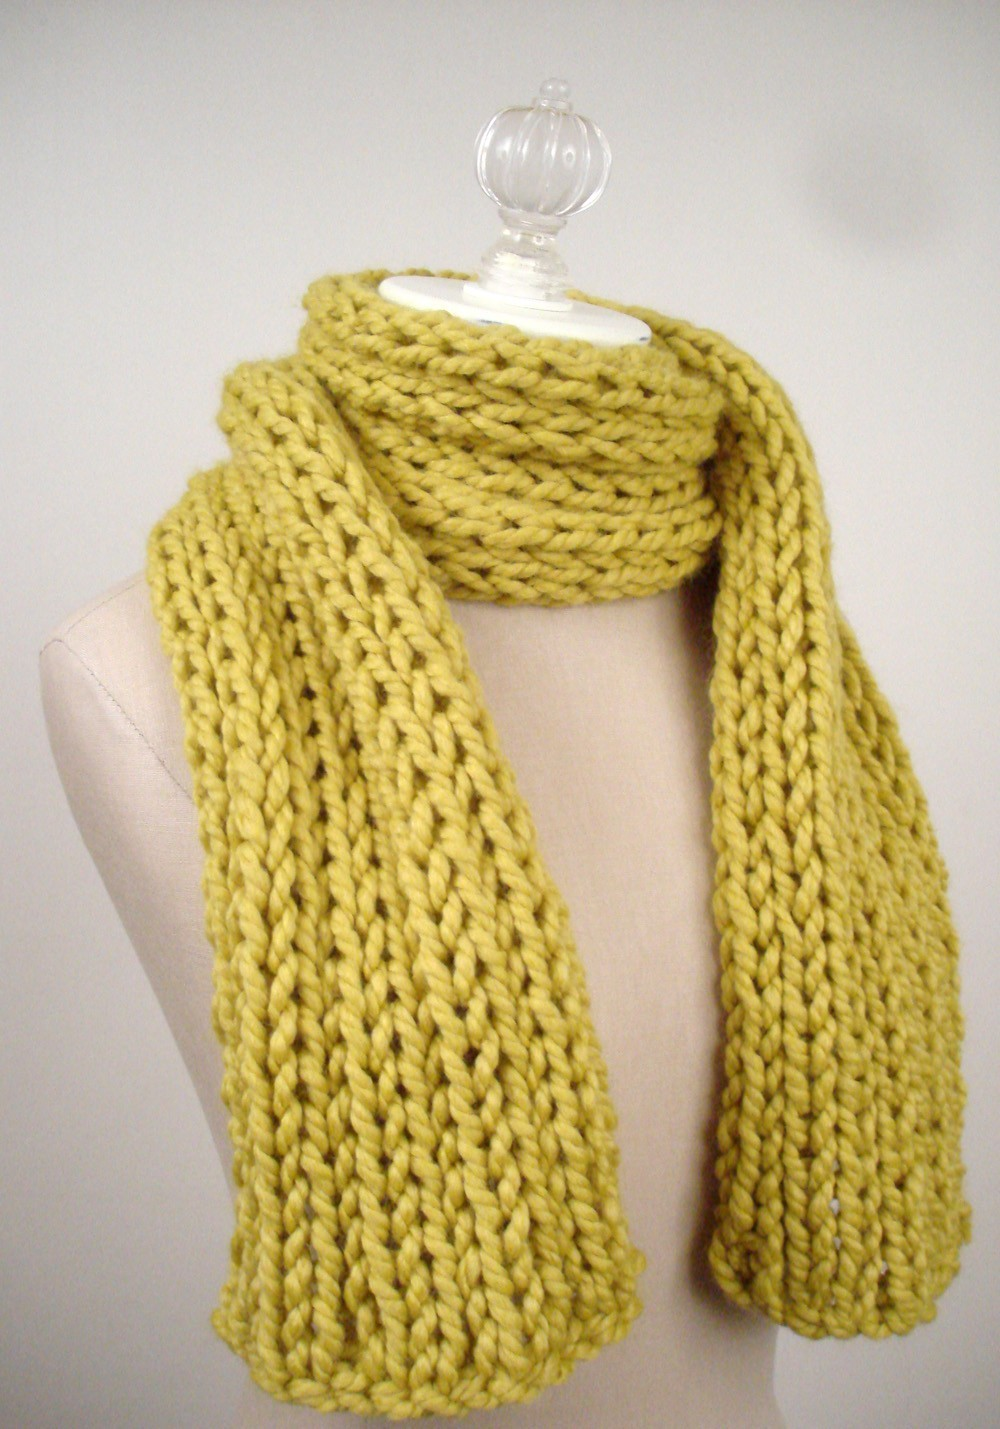 Easy Scarf Knitting Patterns For Men : Scarf Knitting Patterns A Knitting Blog